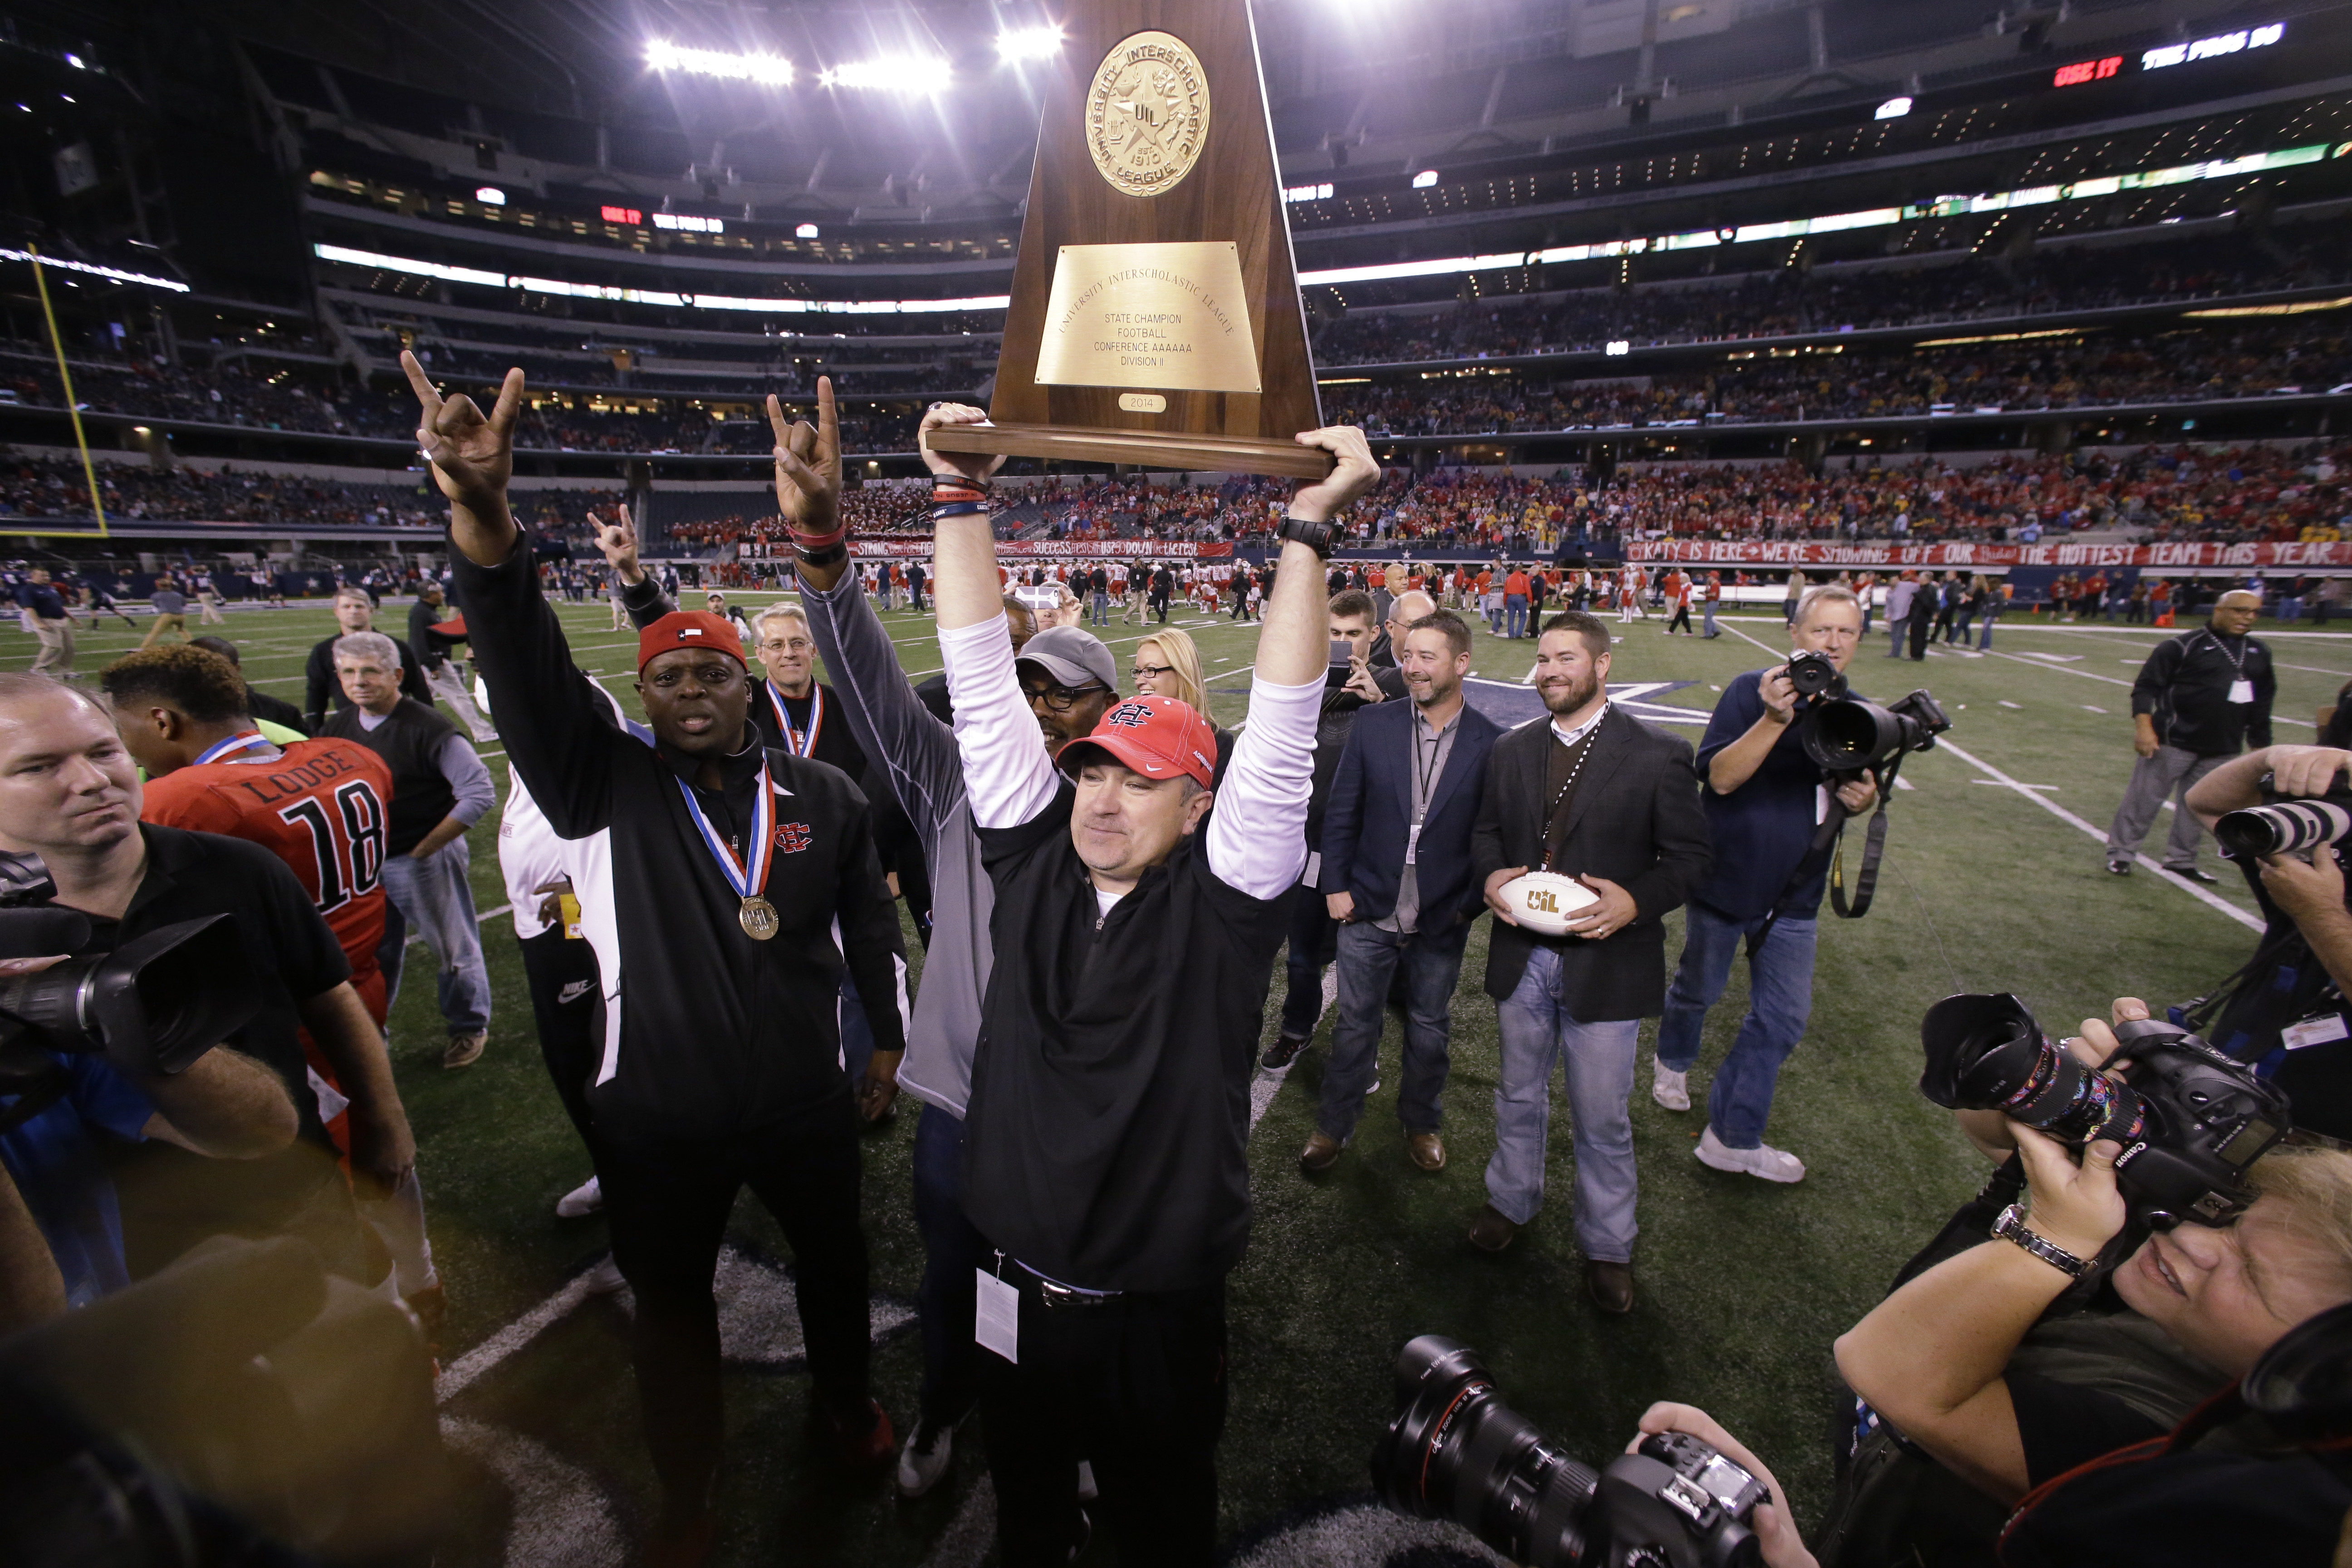 Cedar Hill head coach Joey McGuire holds up the trophy after his team won the UIL 6A Division II State Championship football game. Cedar Hill won 23-20. (LM Otero, AP Photo)